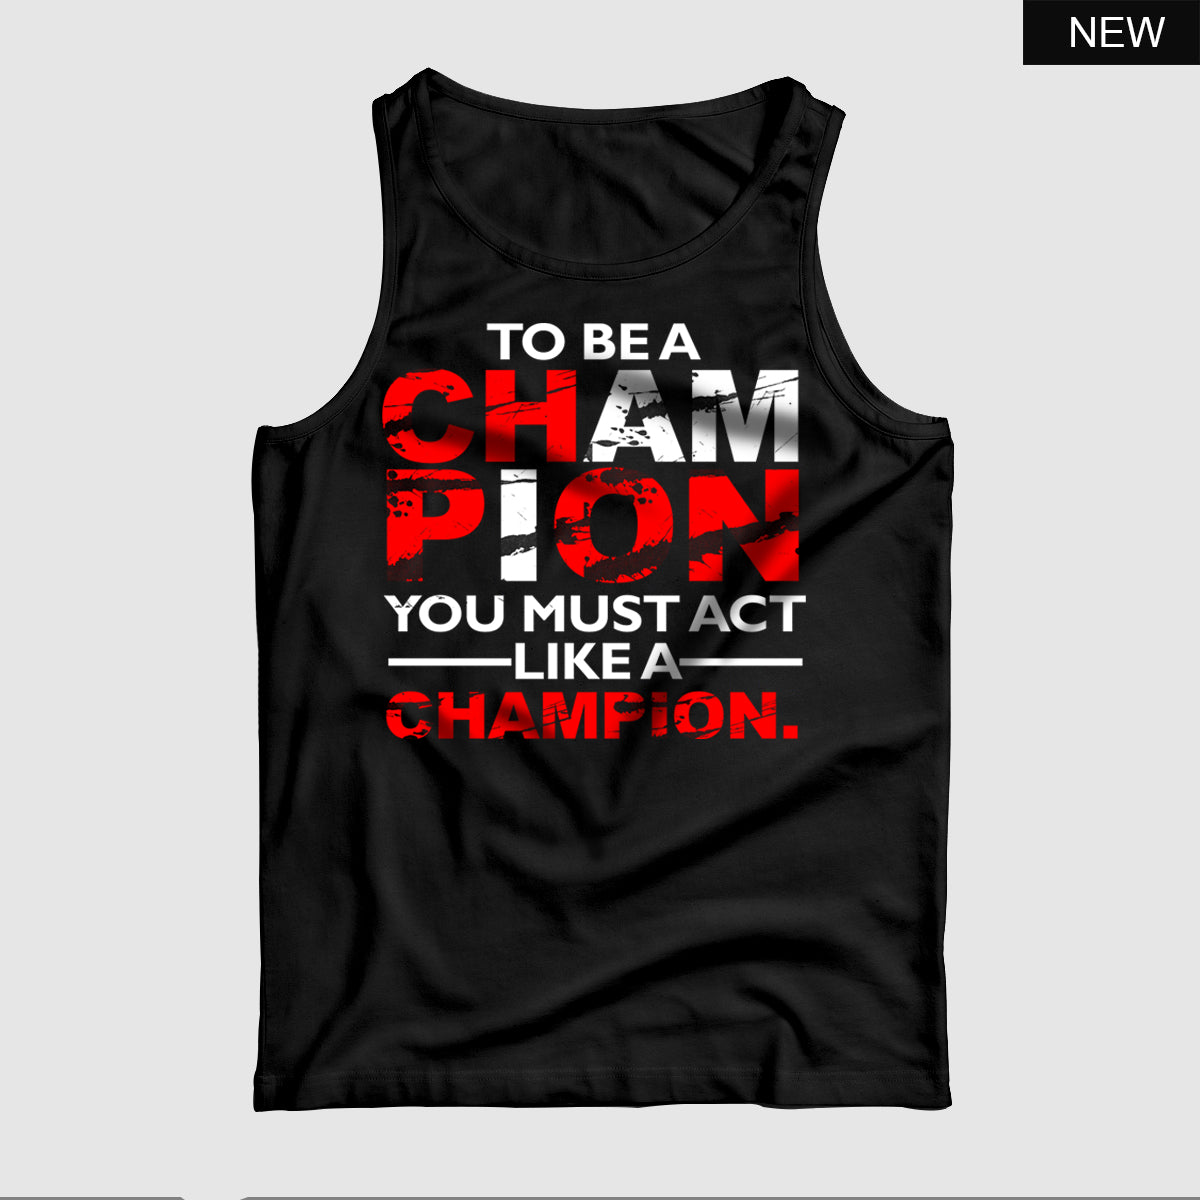 Act like a Champion™ Tank Top